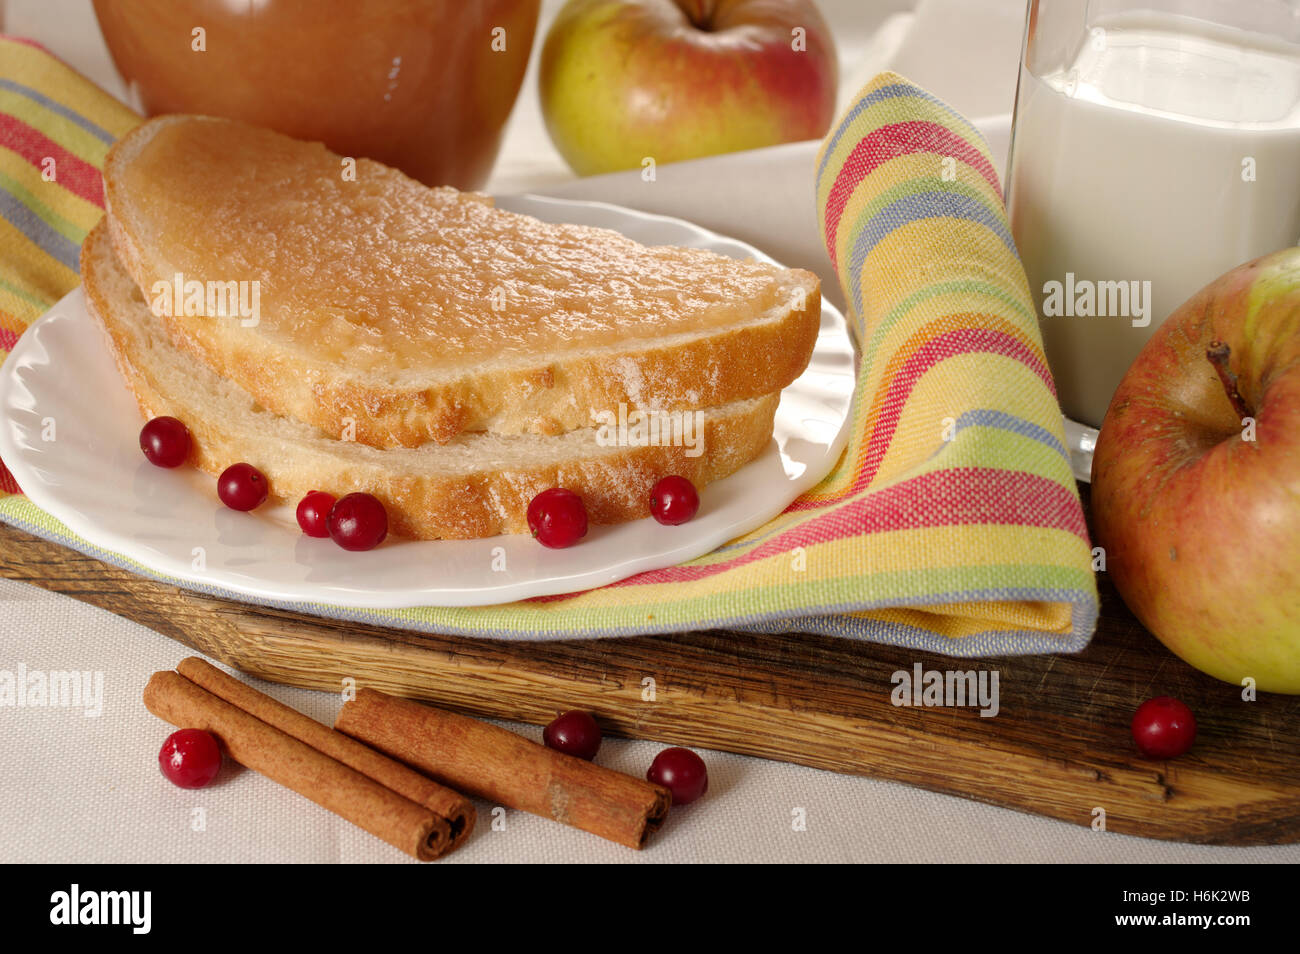 Bread with home made apple jam - Stock Image